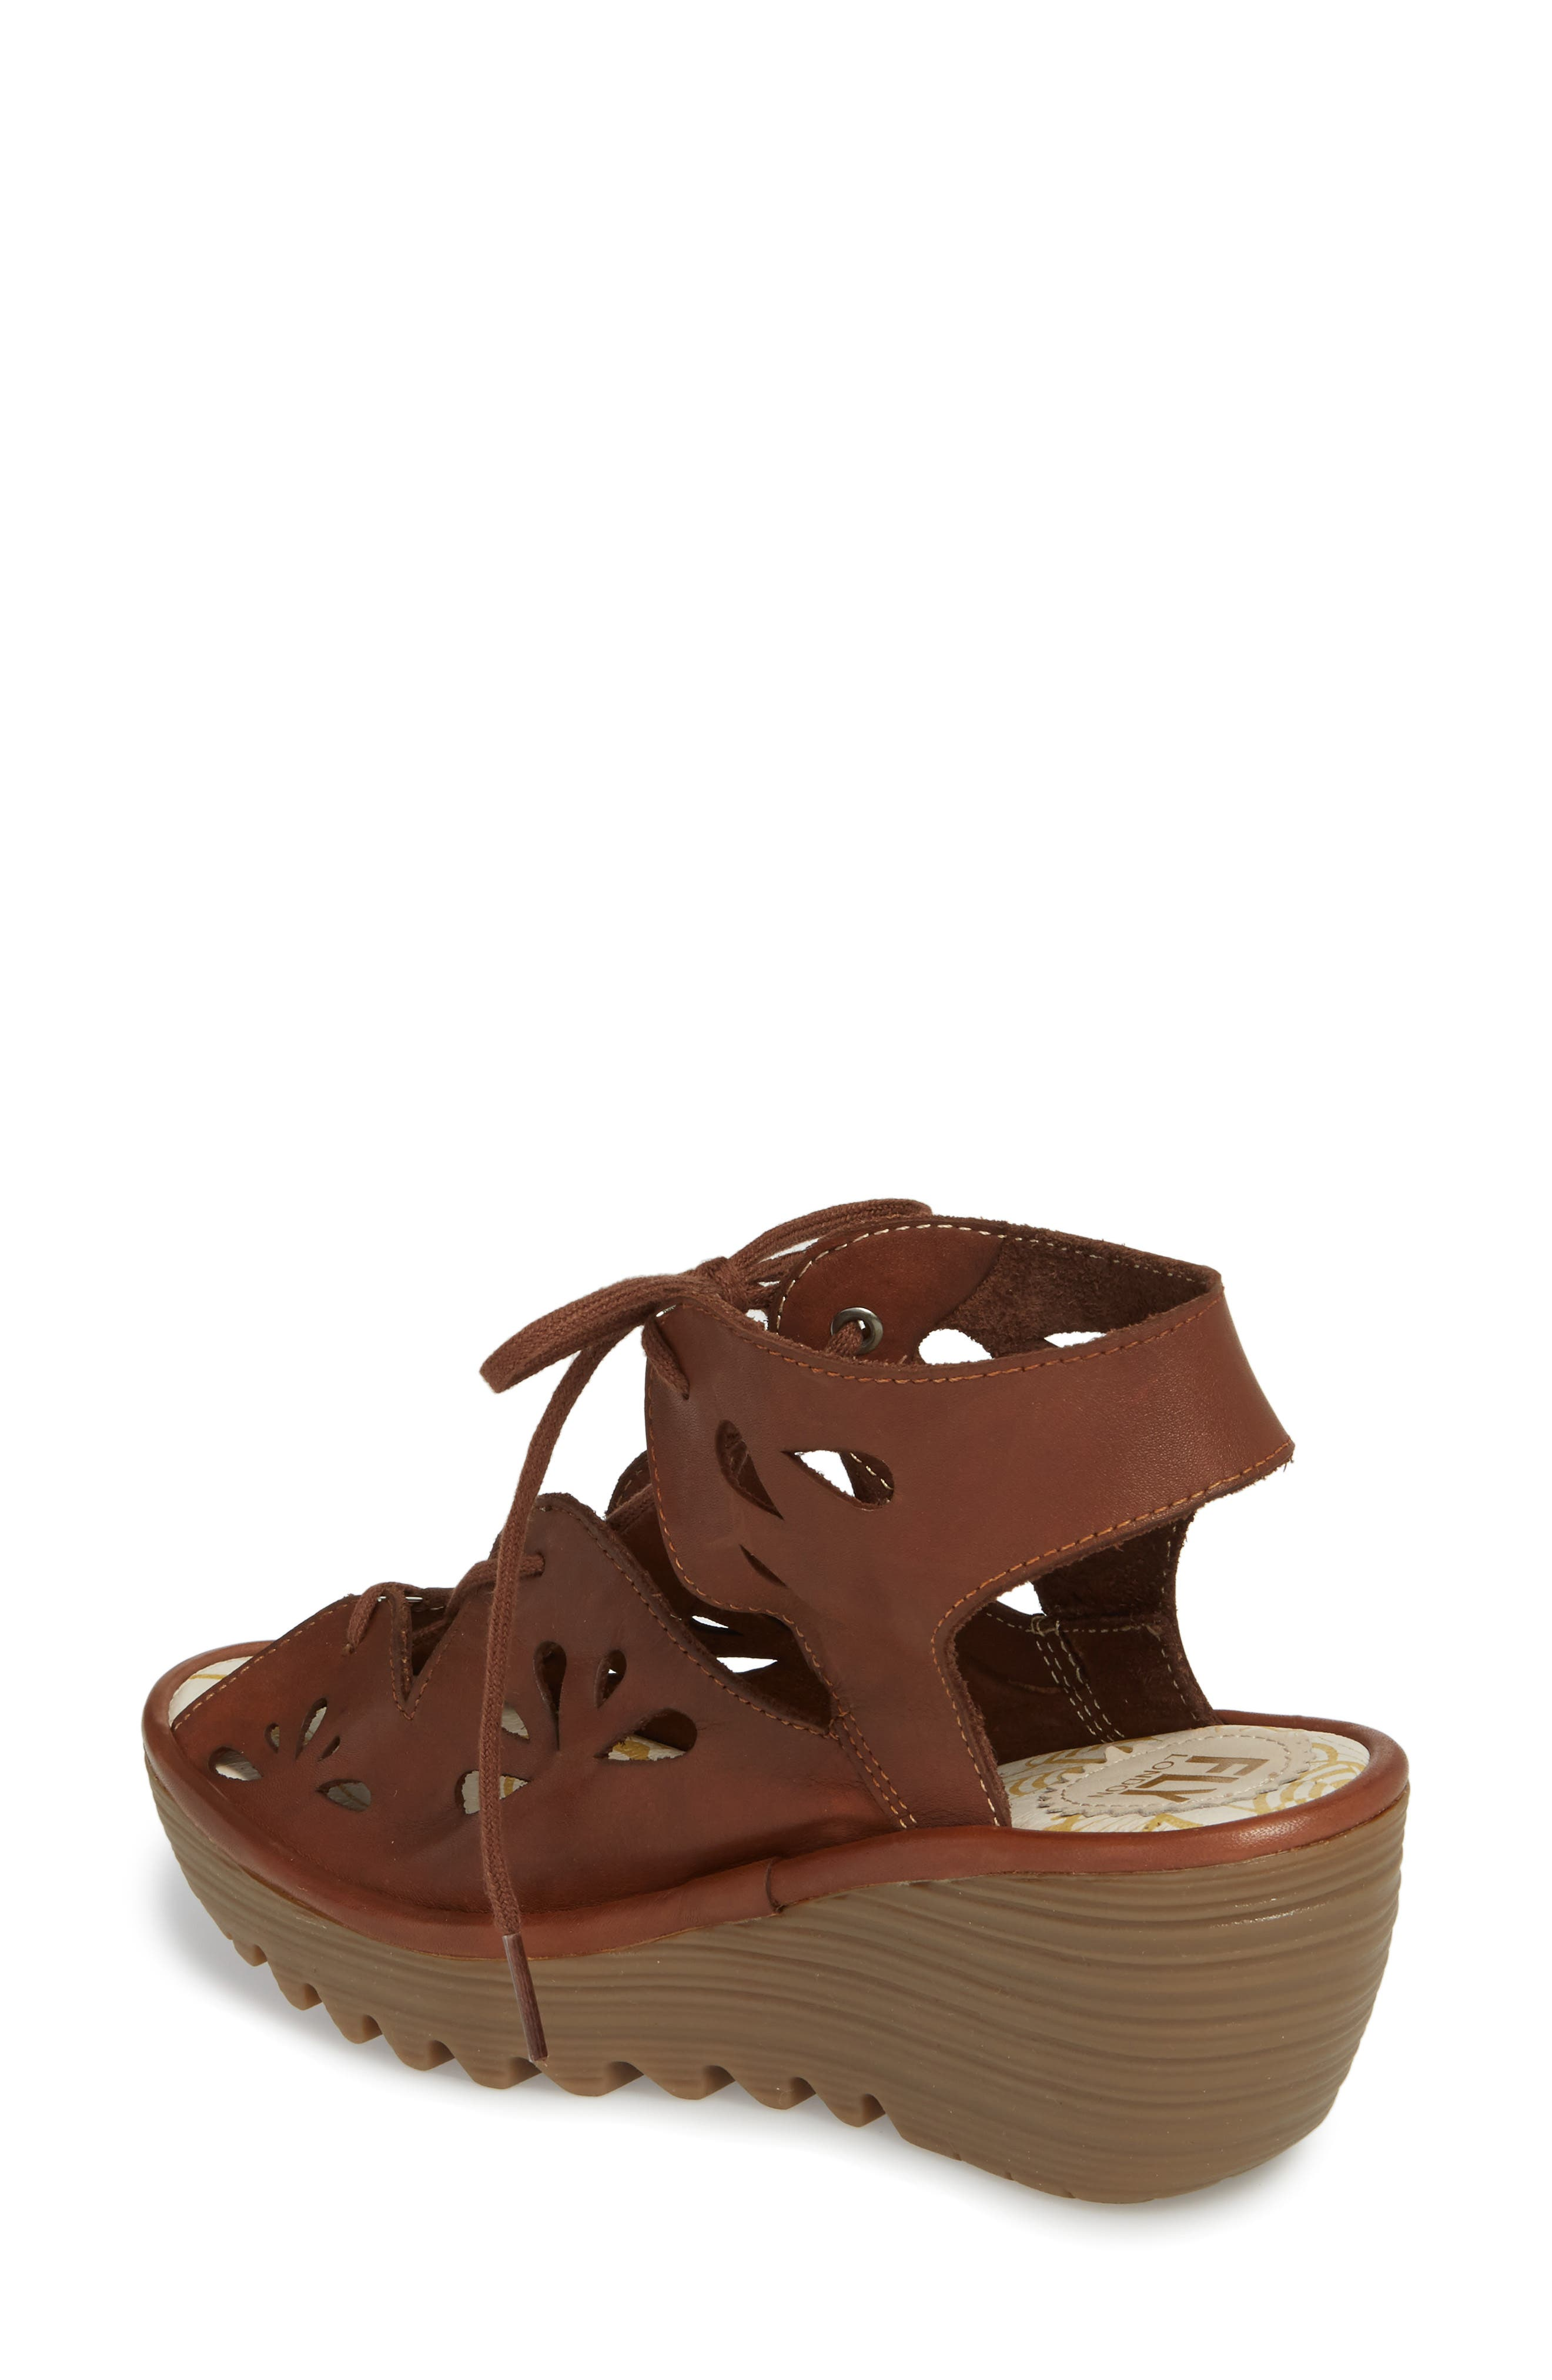 Alternate Image 2  - Fly London Yote Sandal (Women)